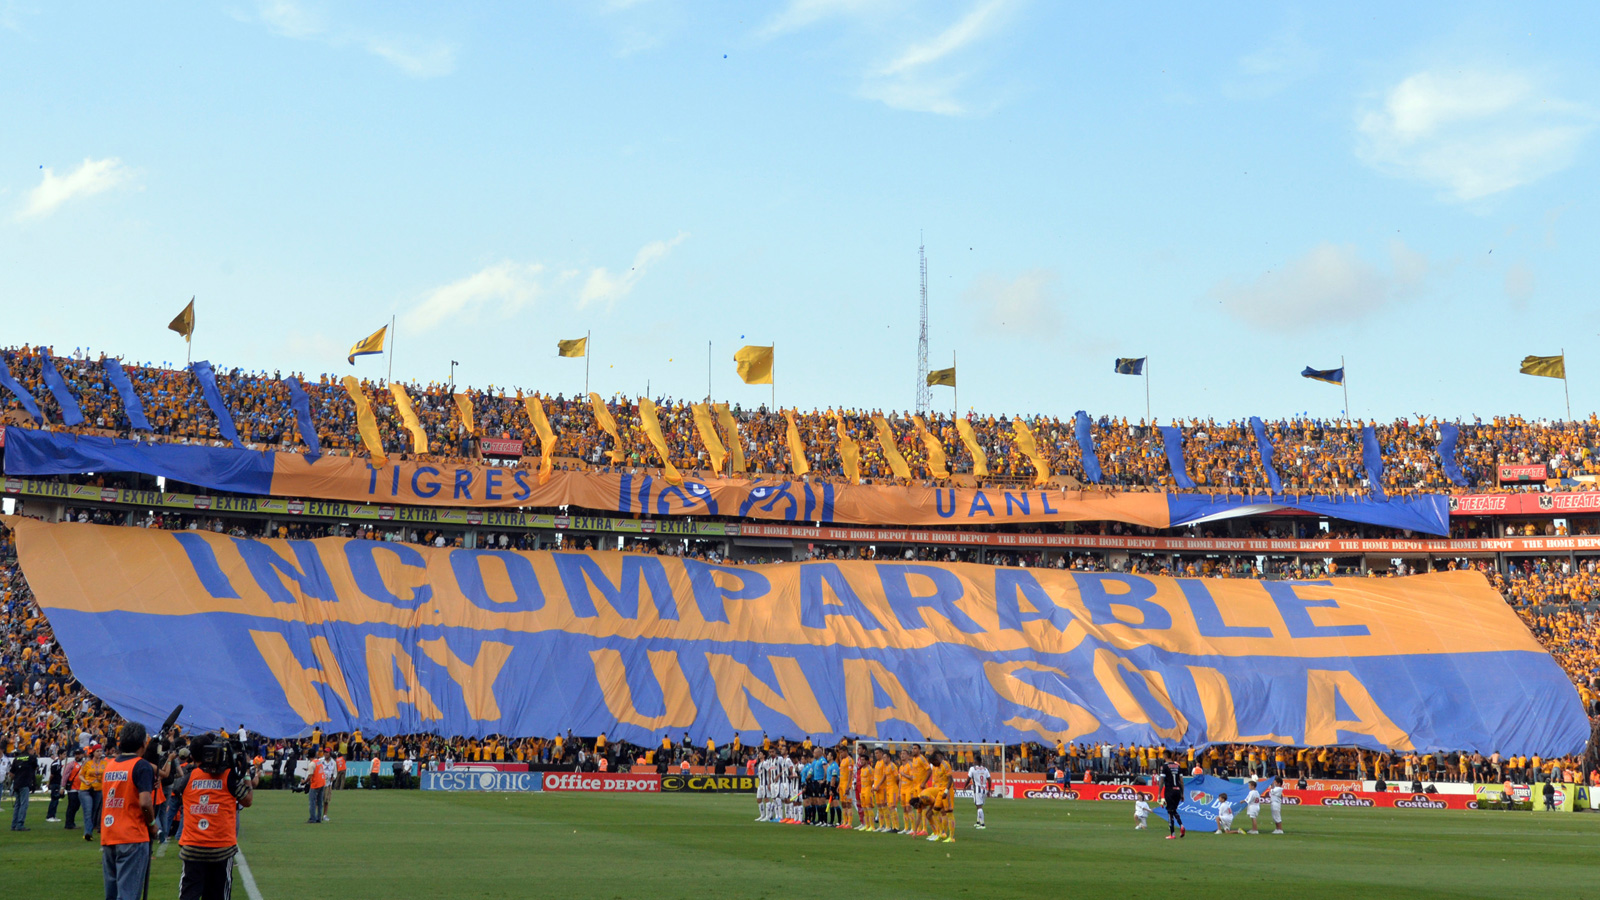 b1114d619d9 Ahead of a clash with Mexican foe Monterrey, Tigres players are treated by  this message